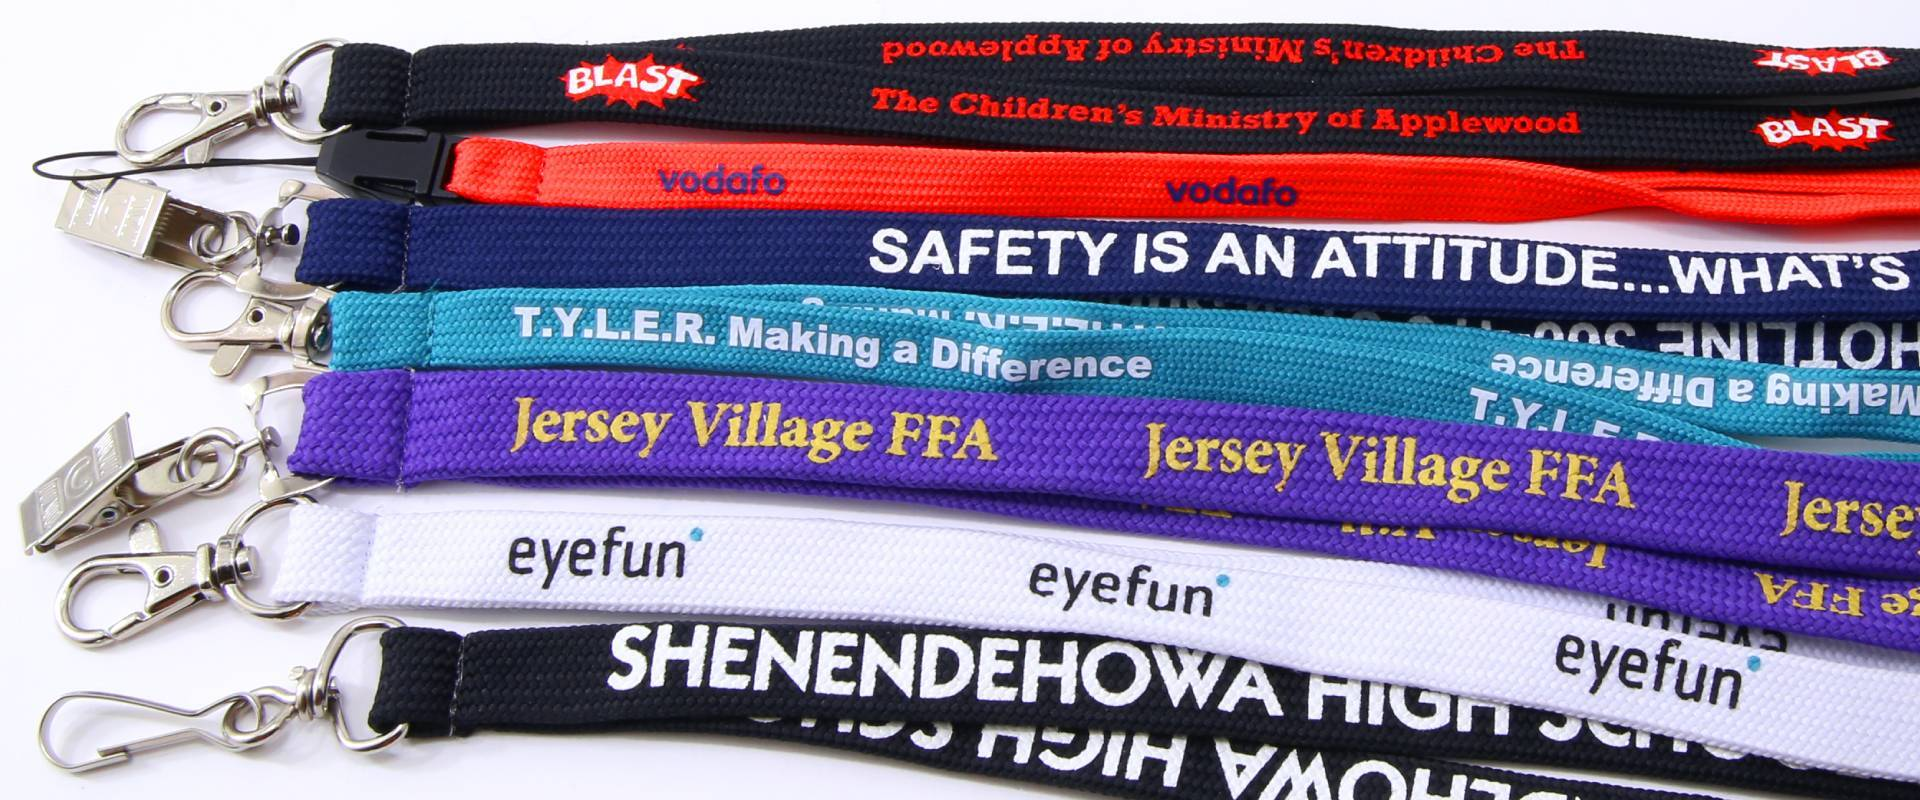 lanyards-background